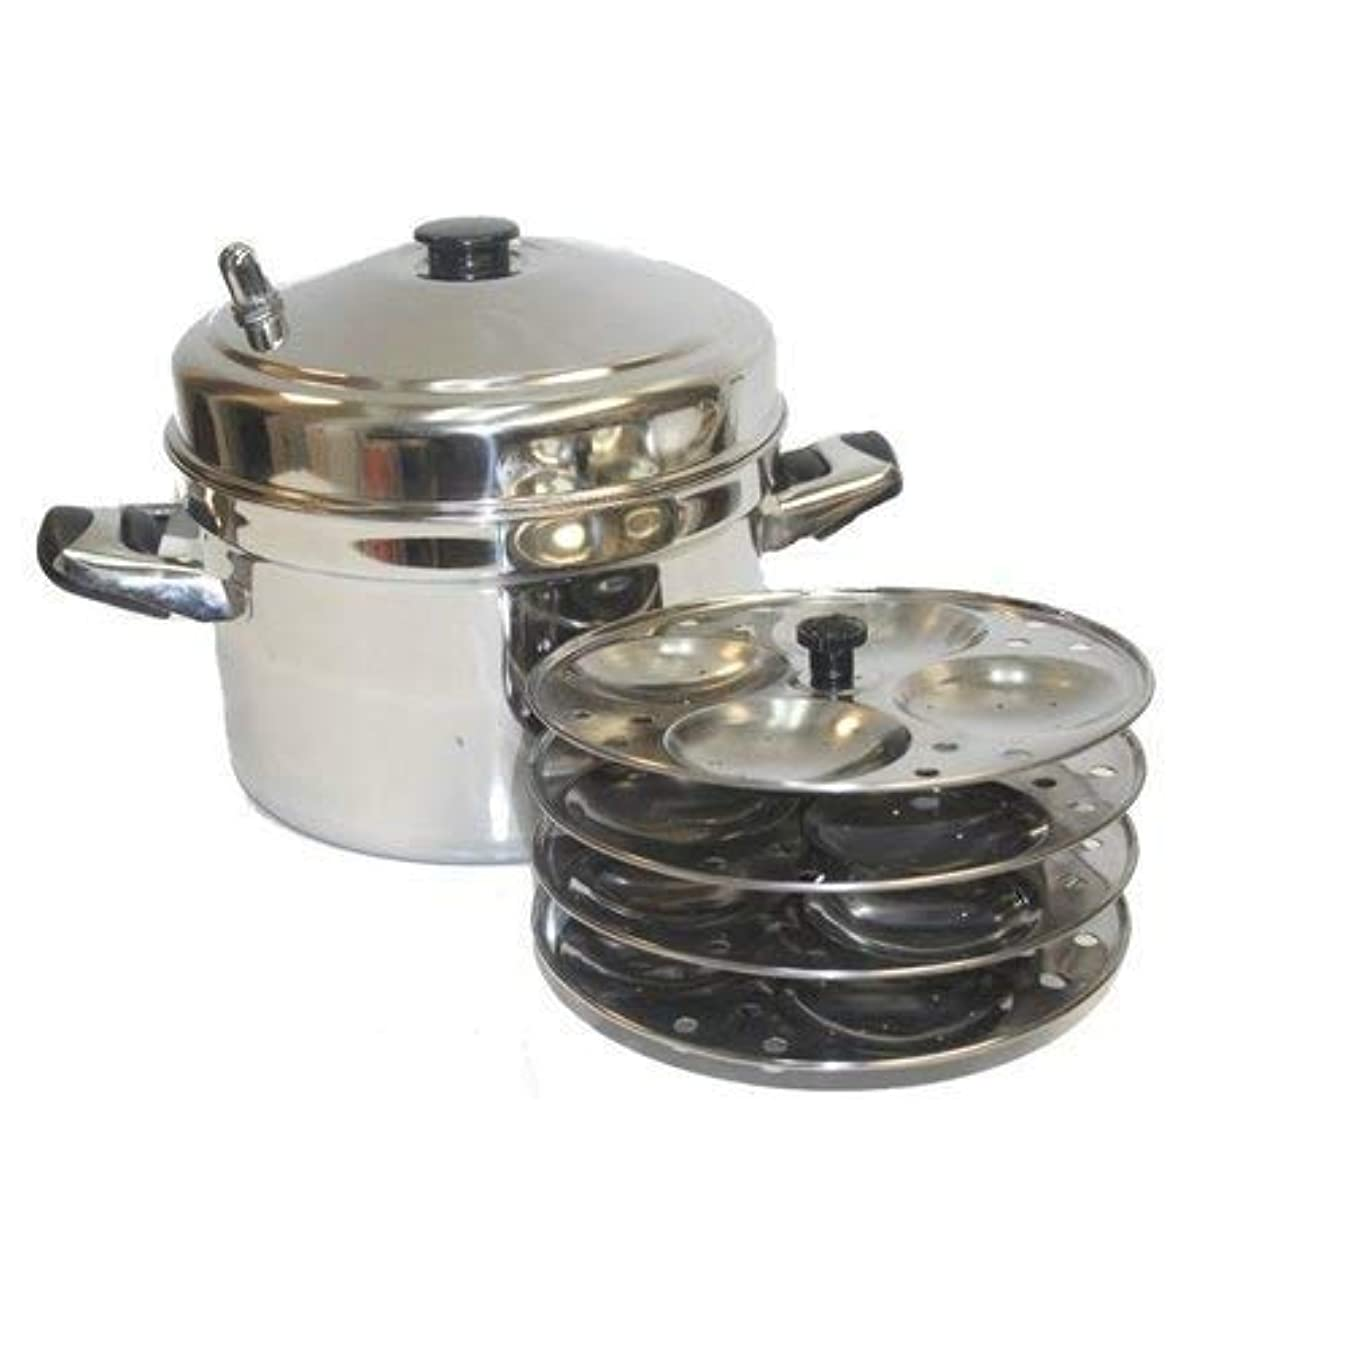 TABAKH IC-205 5-Rack Stainless Steel Idli Cooker with Strong Handles